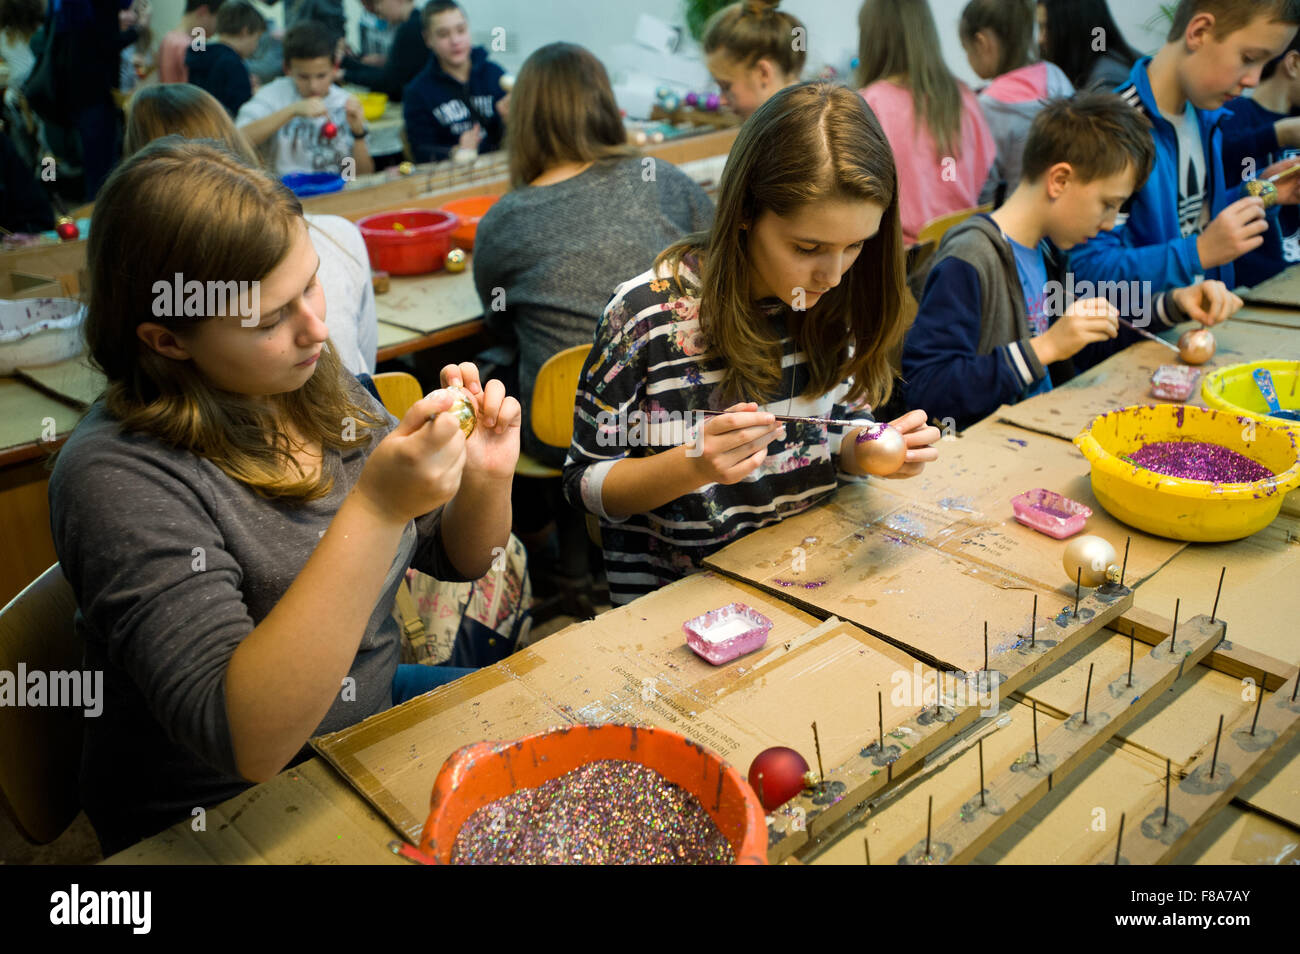 Piotrkow Trybunalski, Poland. 7th December, 2015. School youth had an opportunity to visit 'Szkło-Decor' - Stock Image